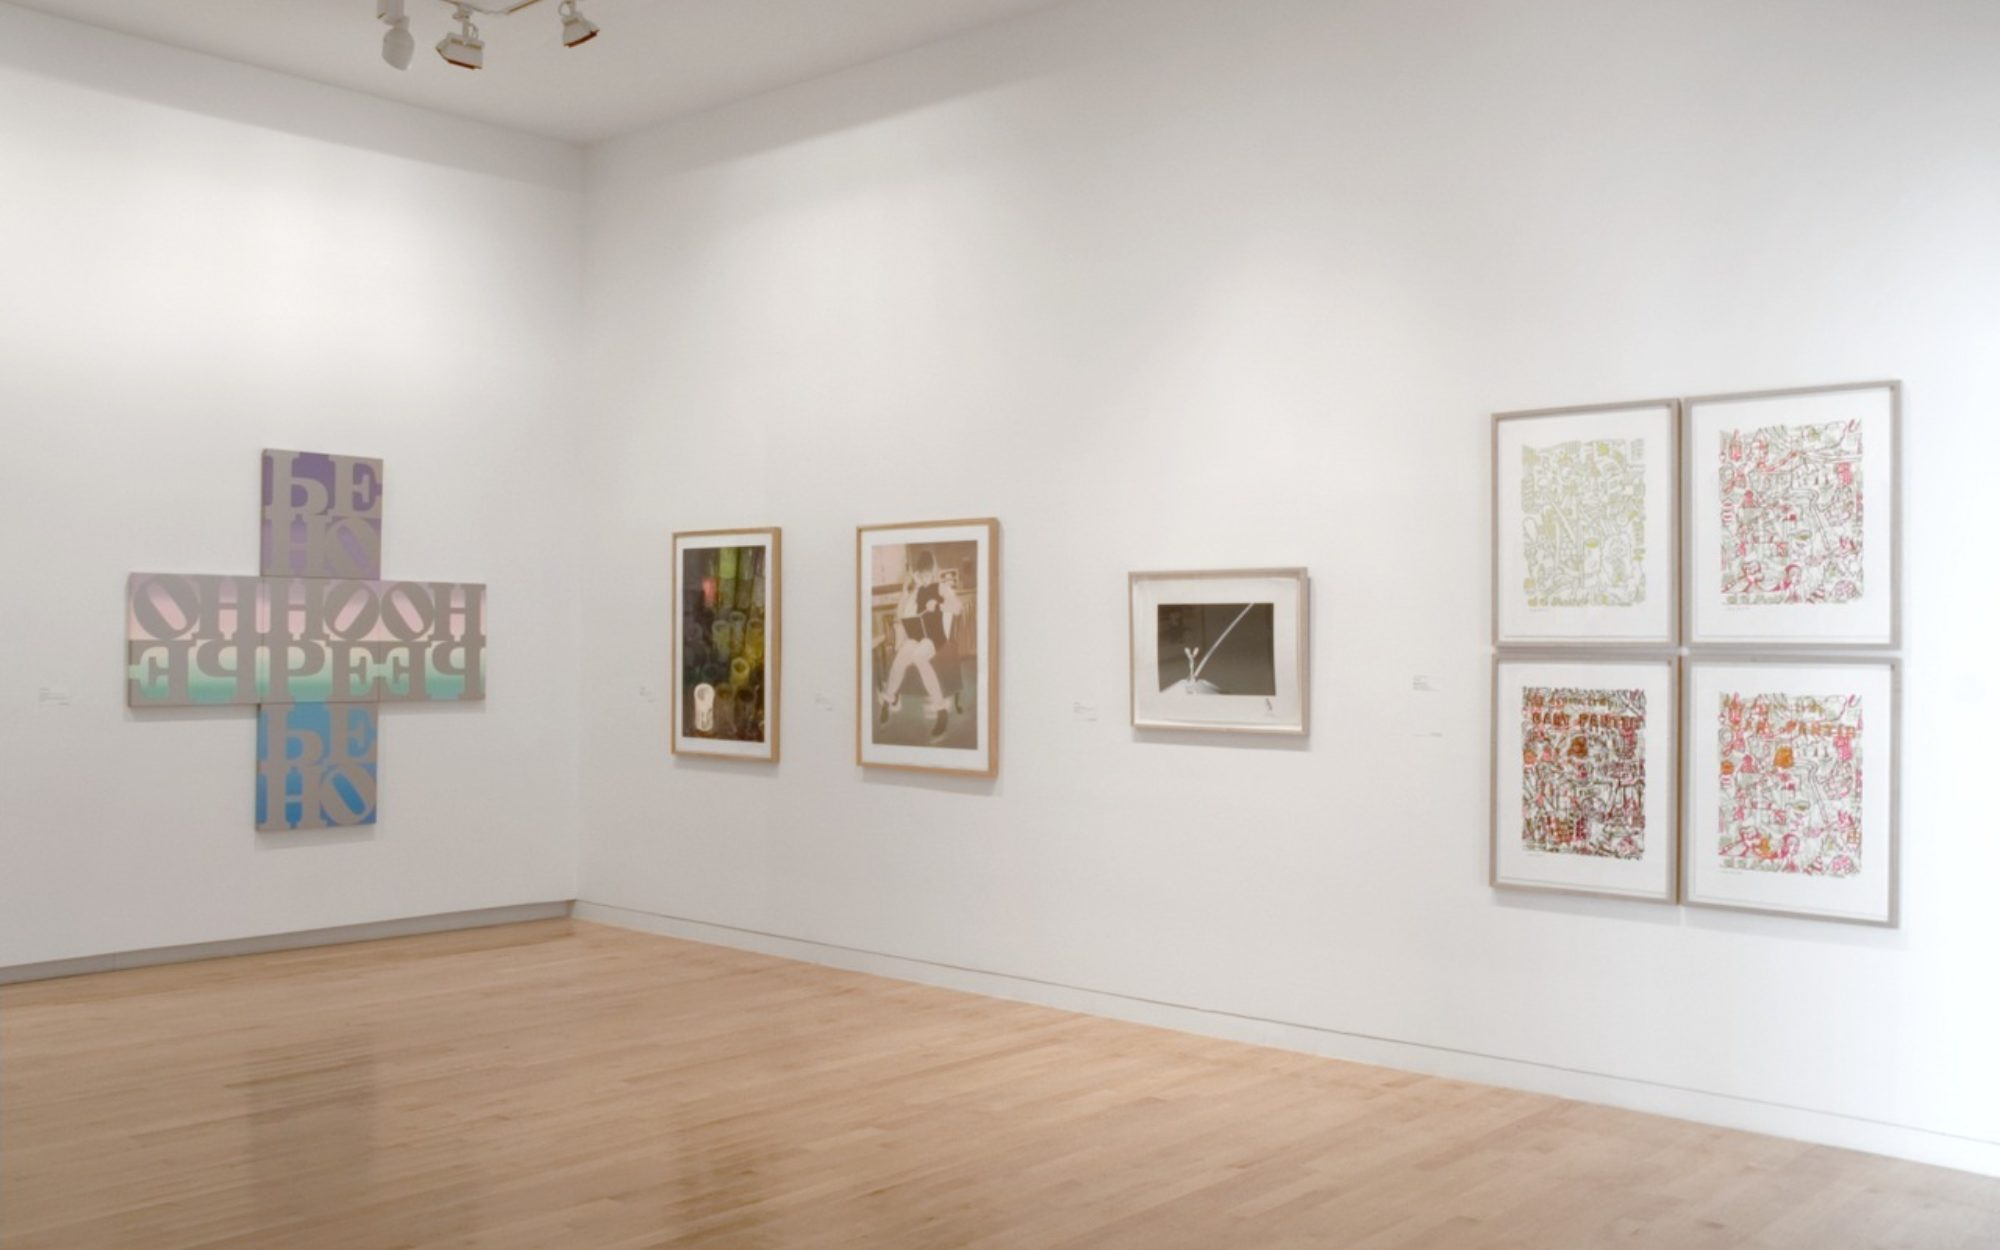 Various screen prints by Gary Lichtenstein hang on the gallery walls